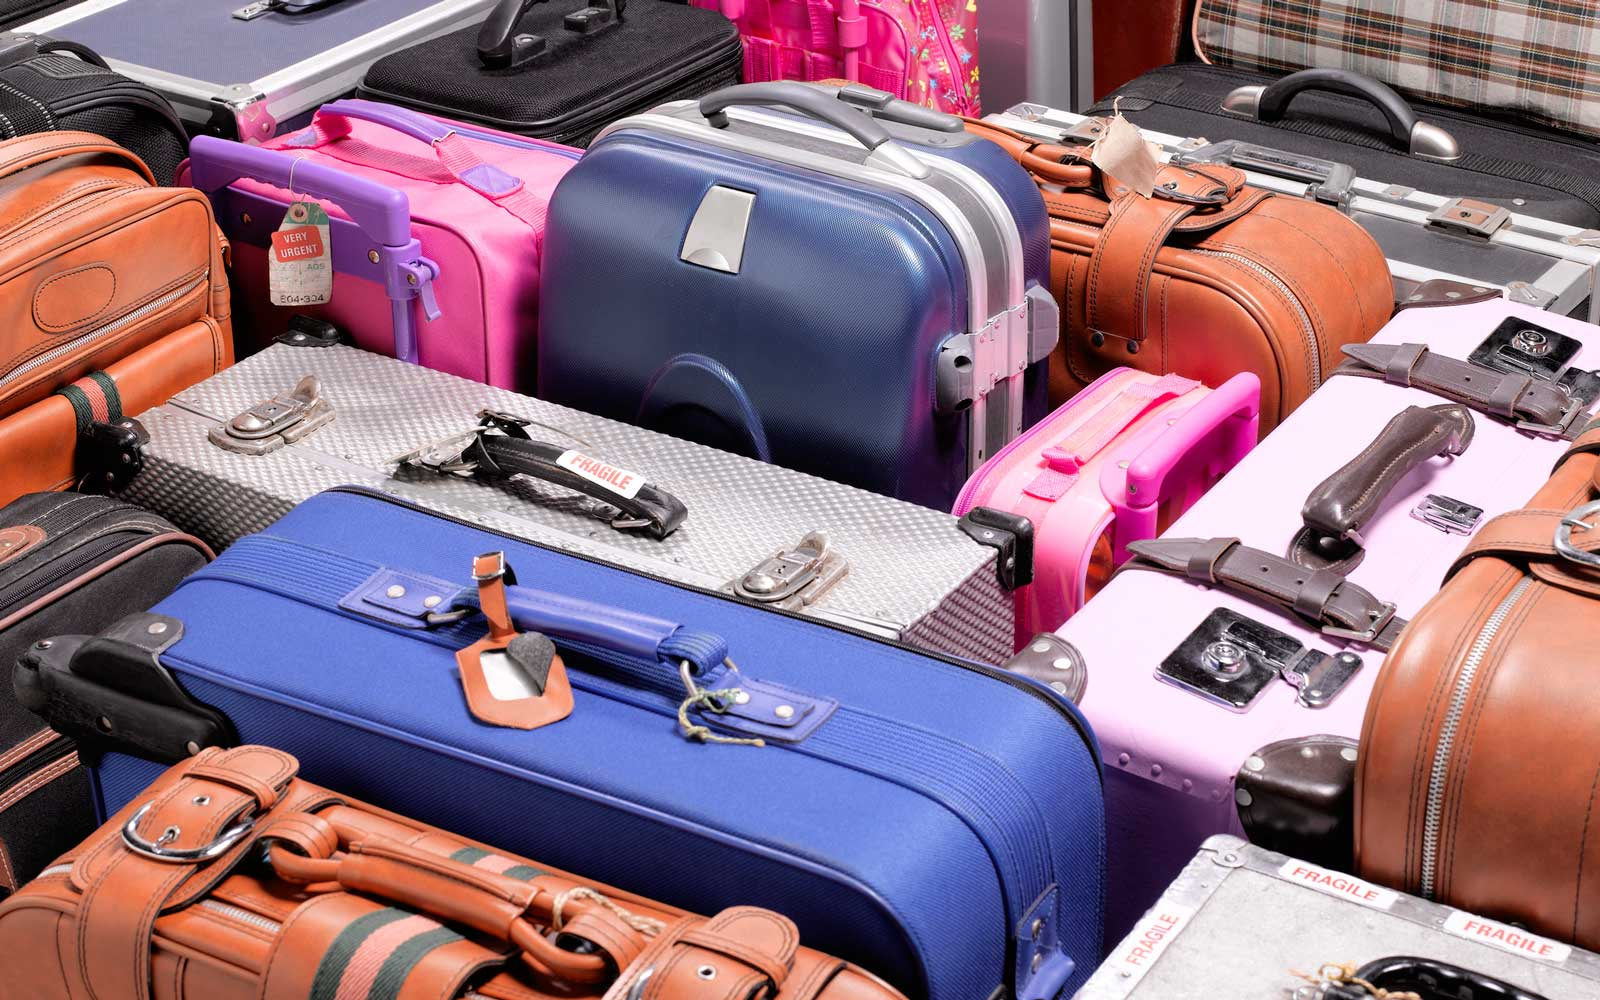 Miss Universe Thailand's 17 Suitcases